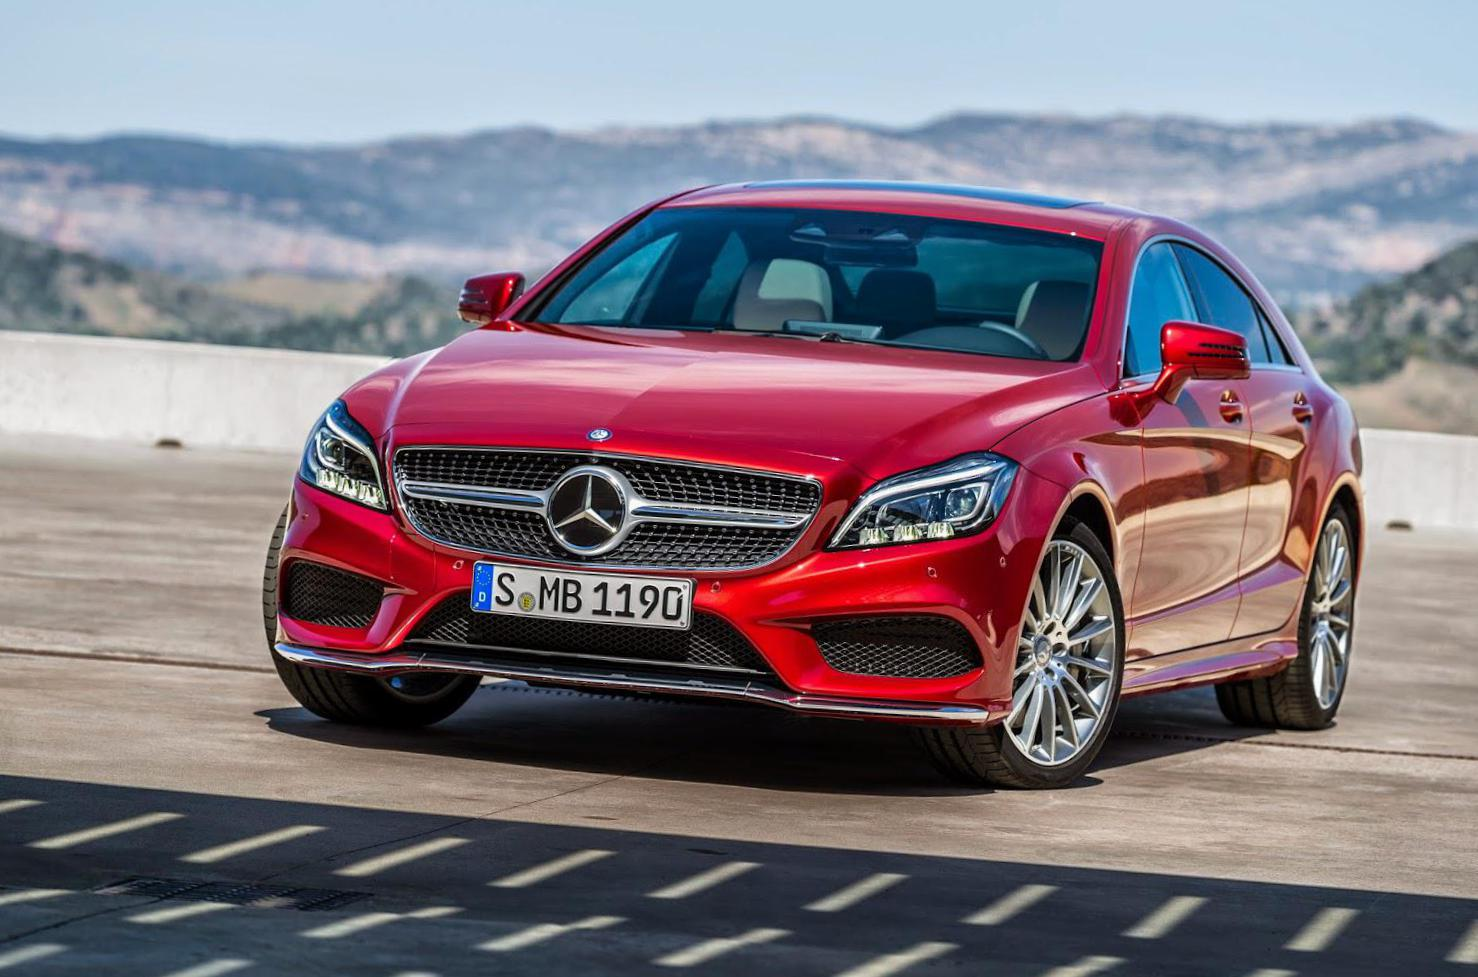 CLS Shooting Brake (X218) Mercedes approved coupe